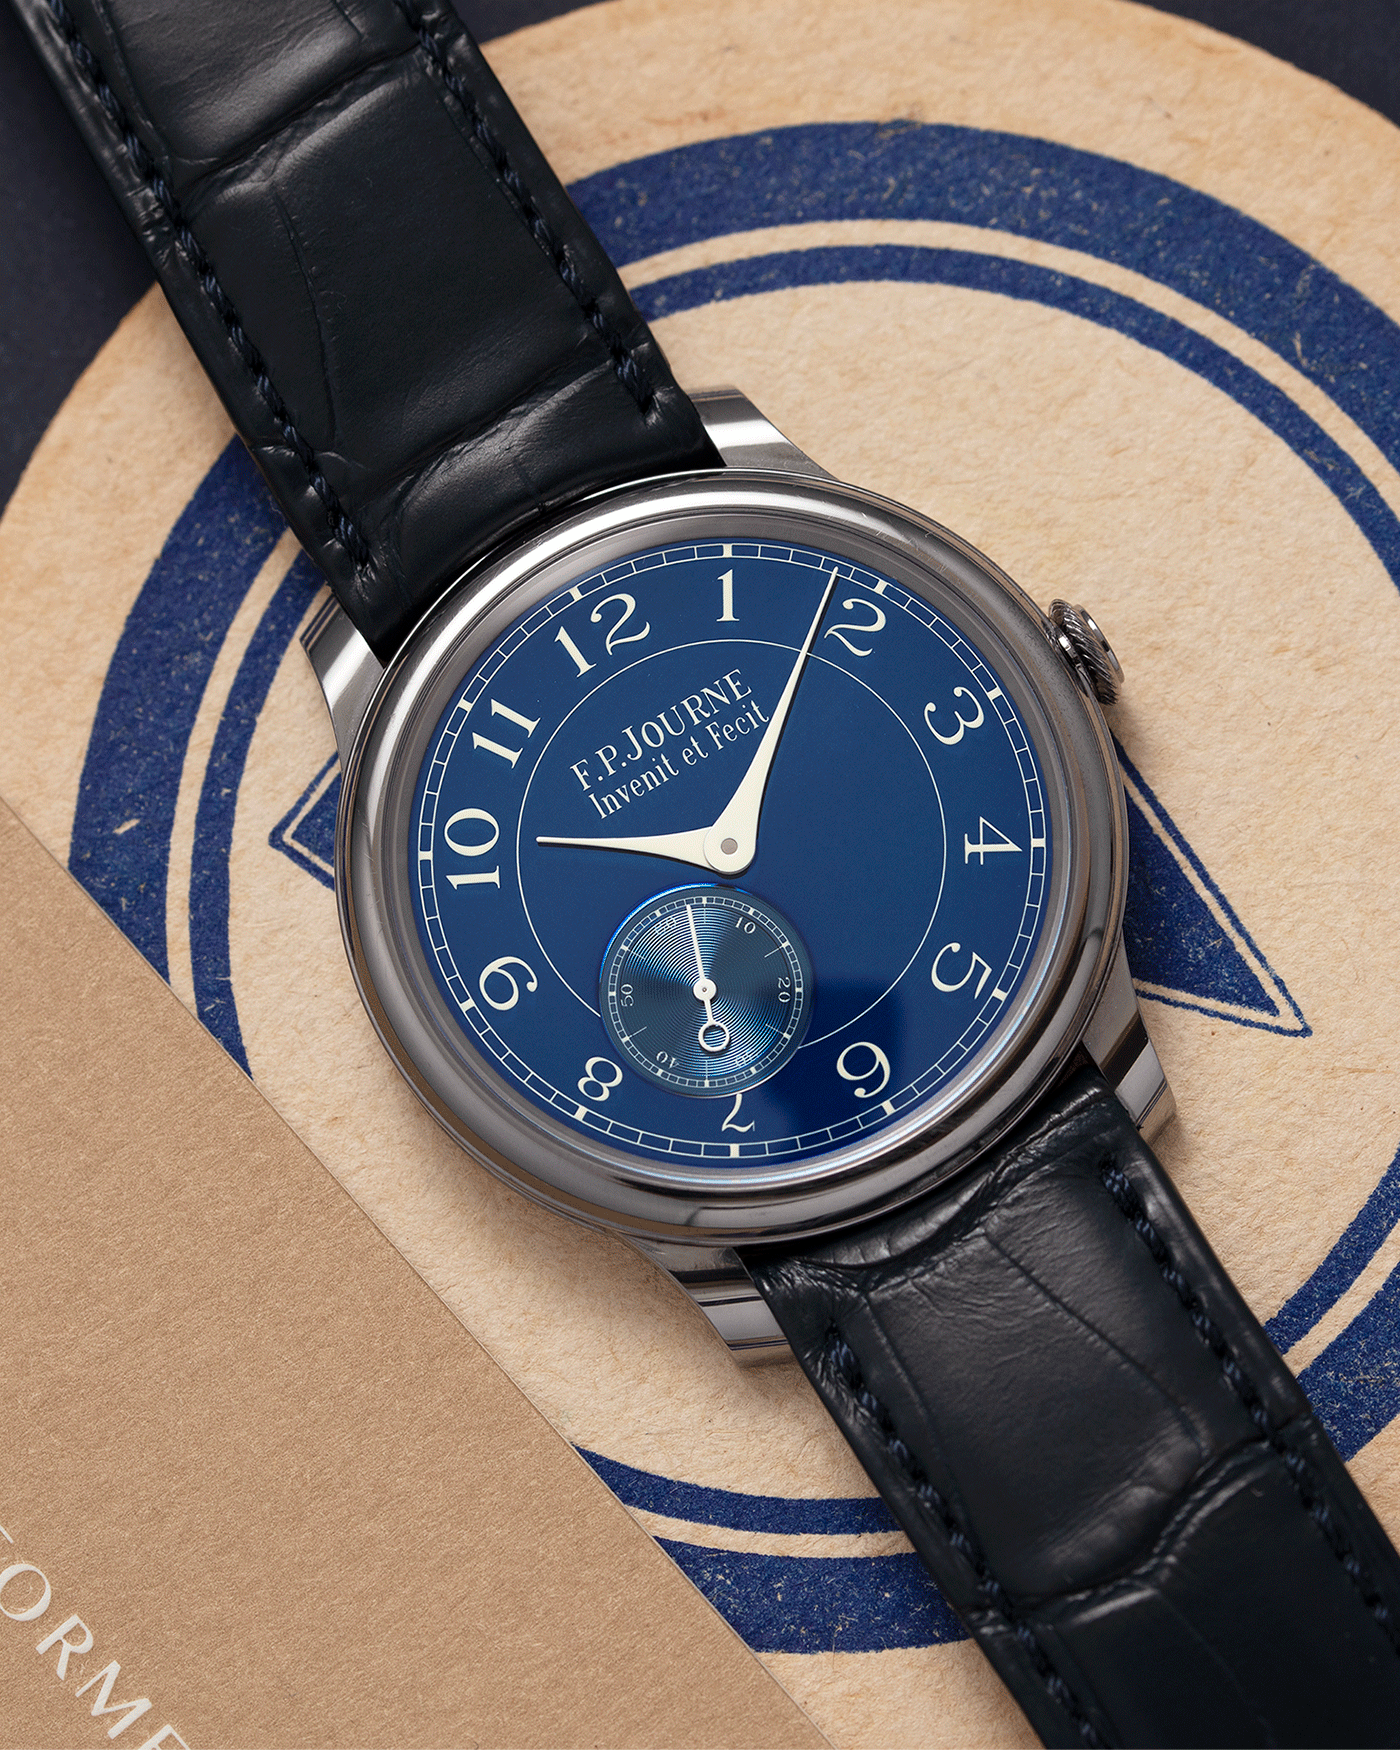 Brand: F.P. Journe Year: 2016 Model: Chronometre Bleu Material: Tantalum Movement: in-house FPJ calibre 1304 Case Diameter: 39mm Bracelet/Strap: F.P. Journe Blue Alligator and Tantalum Tang Buckle